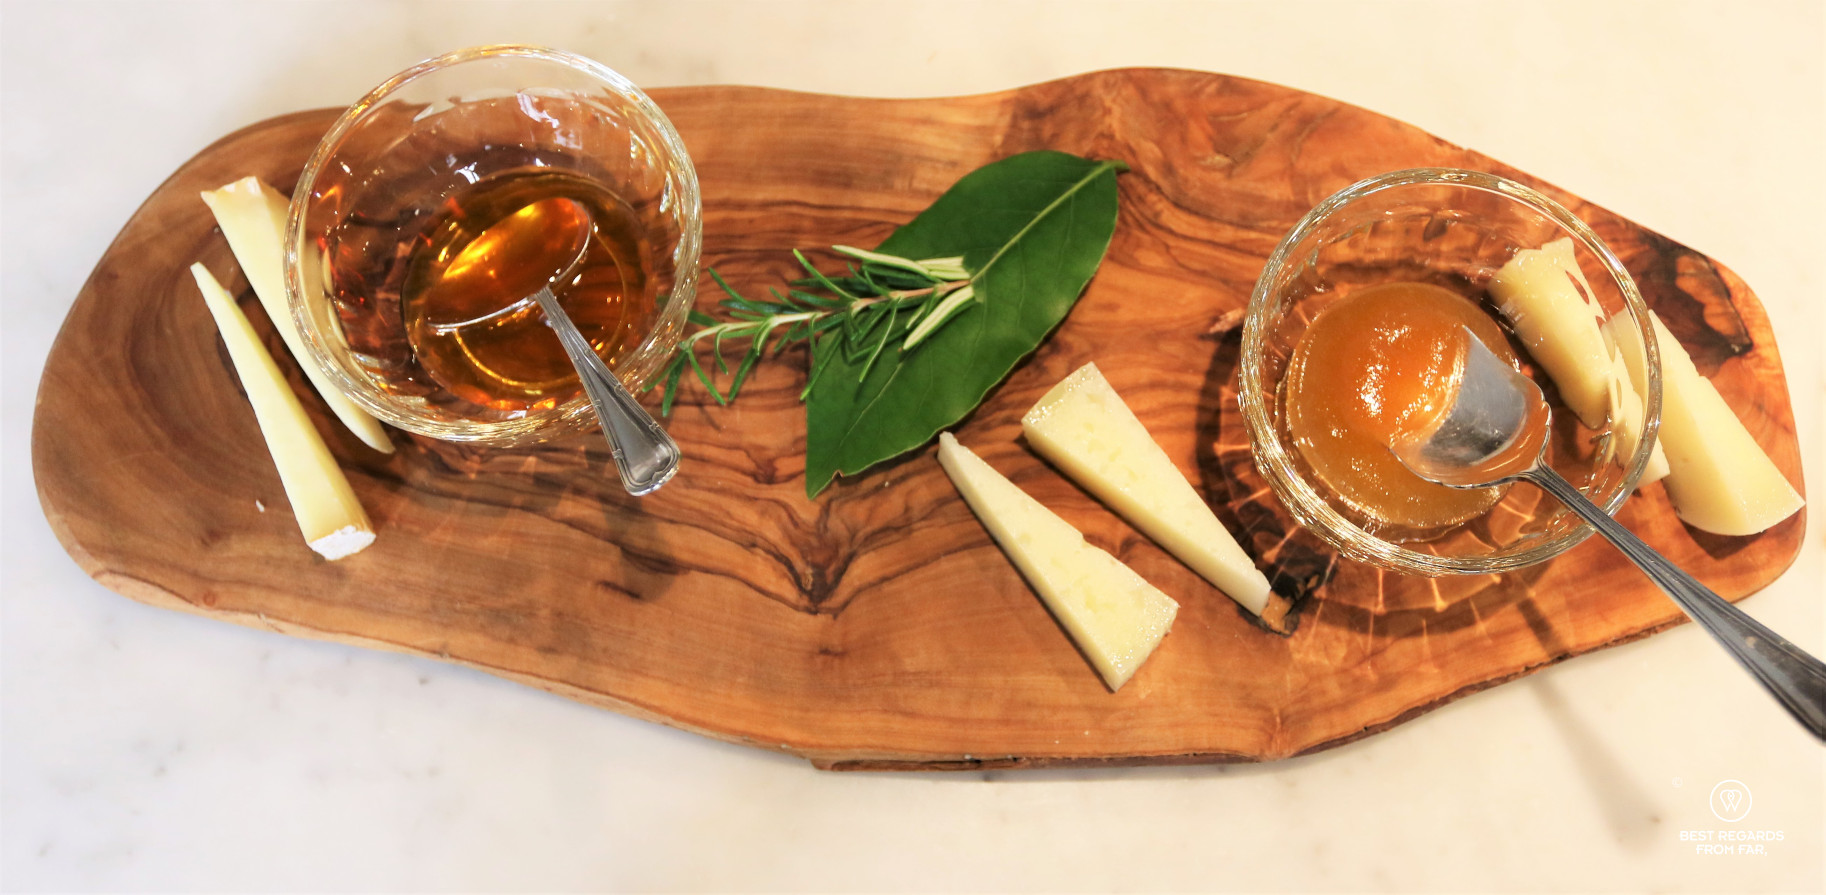 Three types of Italian Pecorino cheese served on a wooden board with honey and mustard